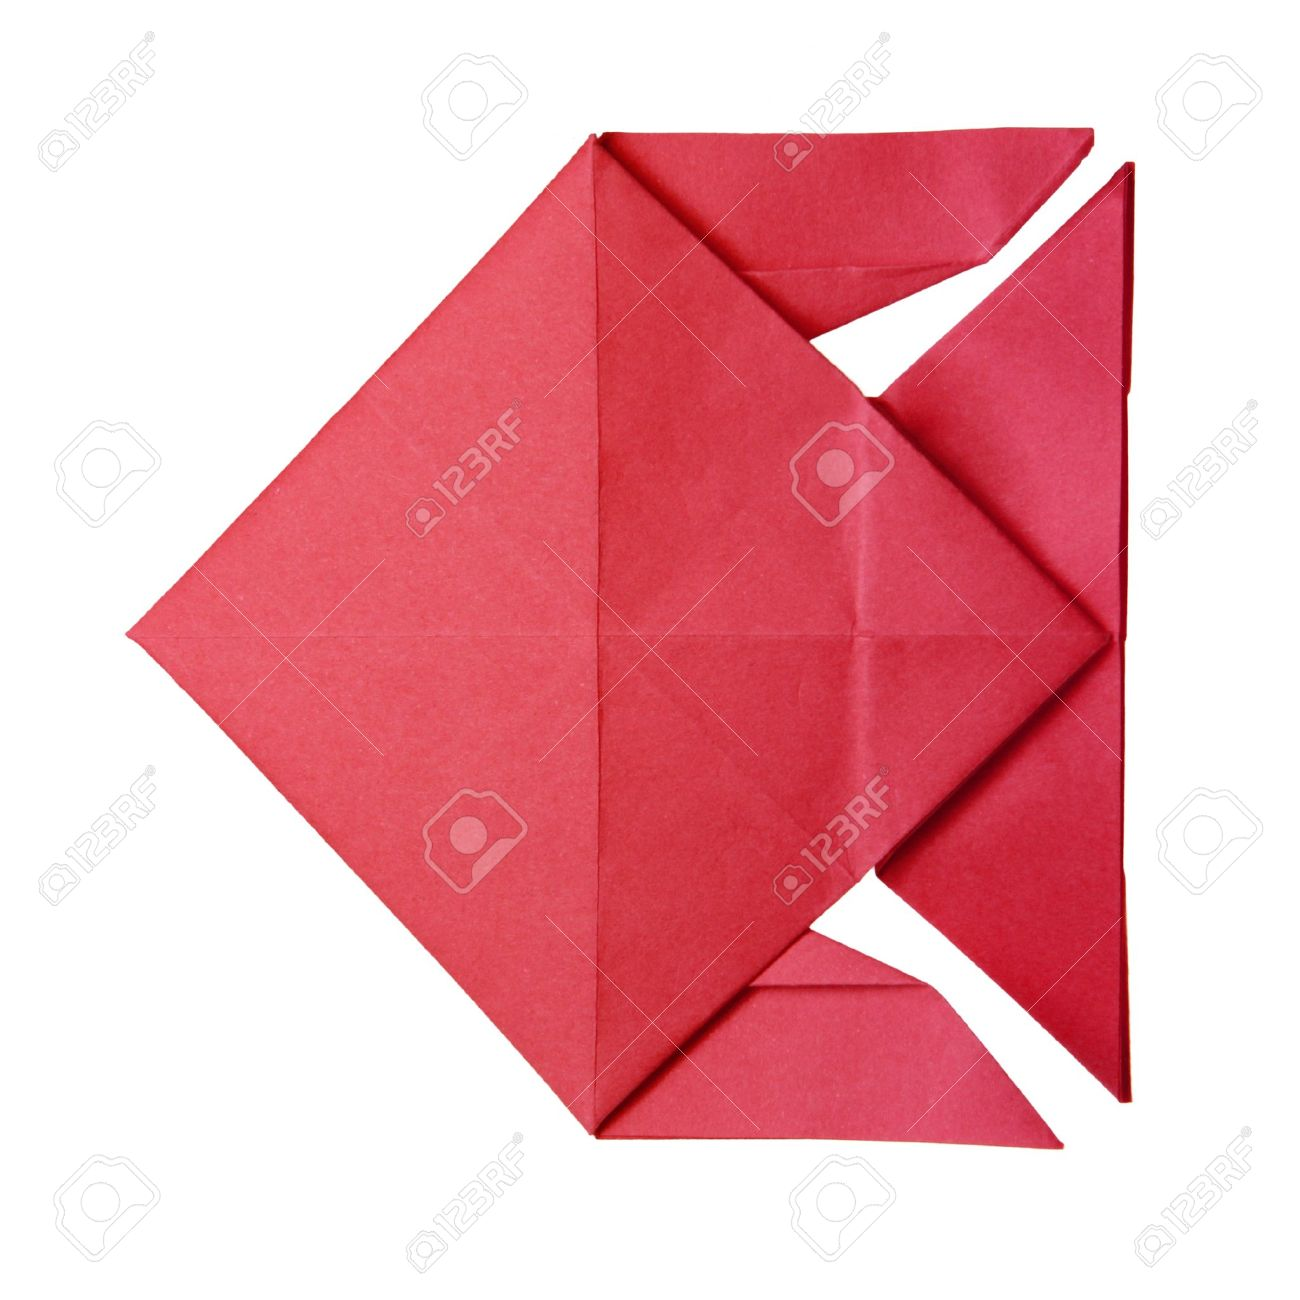 Origami red geometric fish on the white background stock photo origami red geometric fish on the white background stock photo 16118937 jeuxipadfo Images